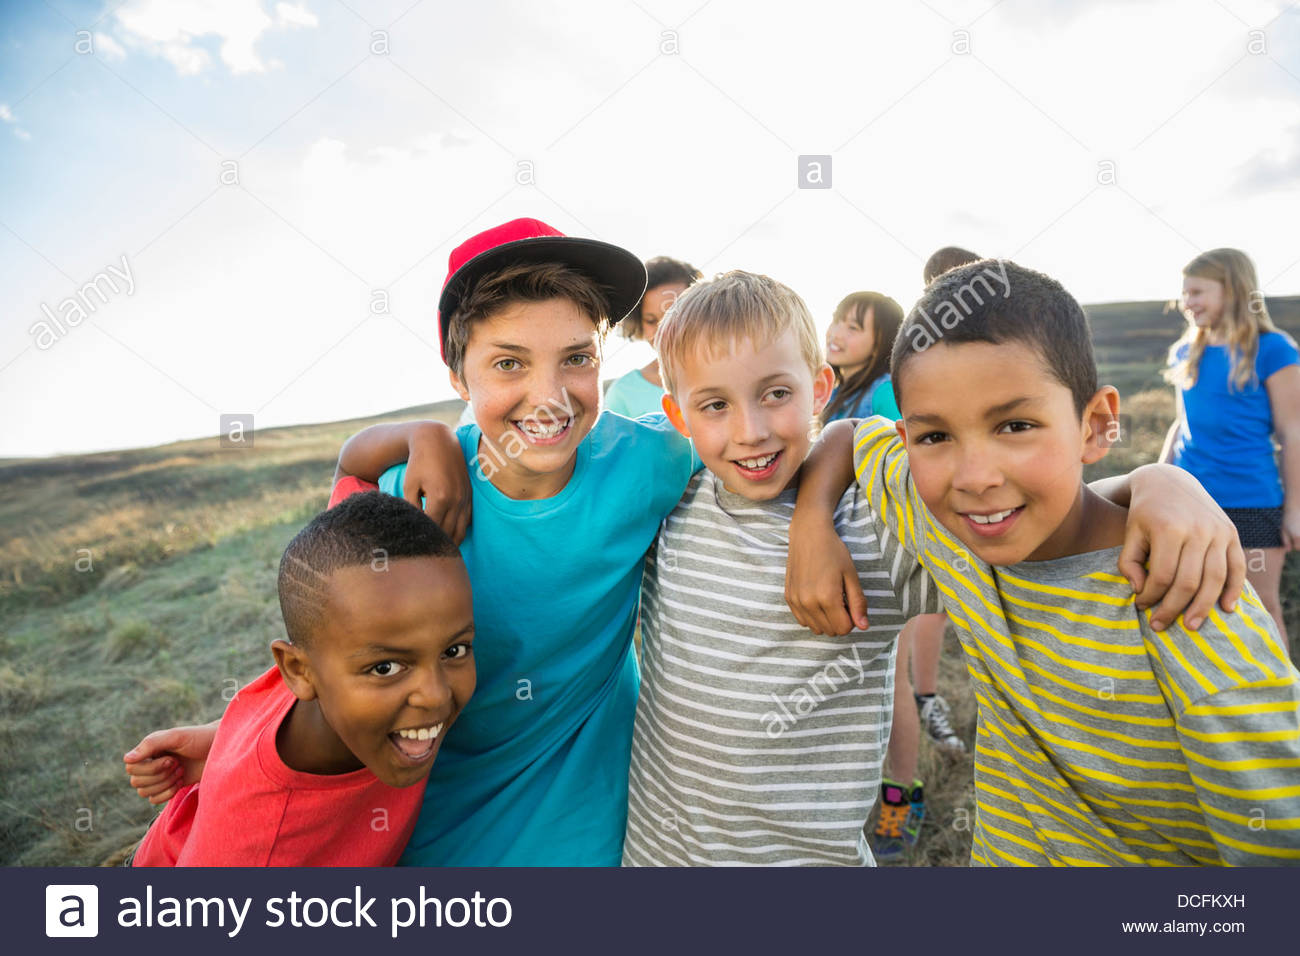 Group portrait of boys with arms around each other - Stock Image